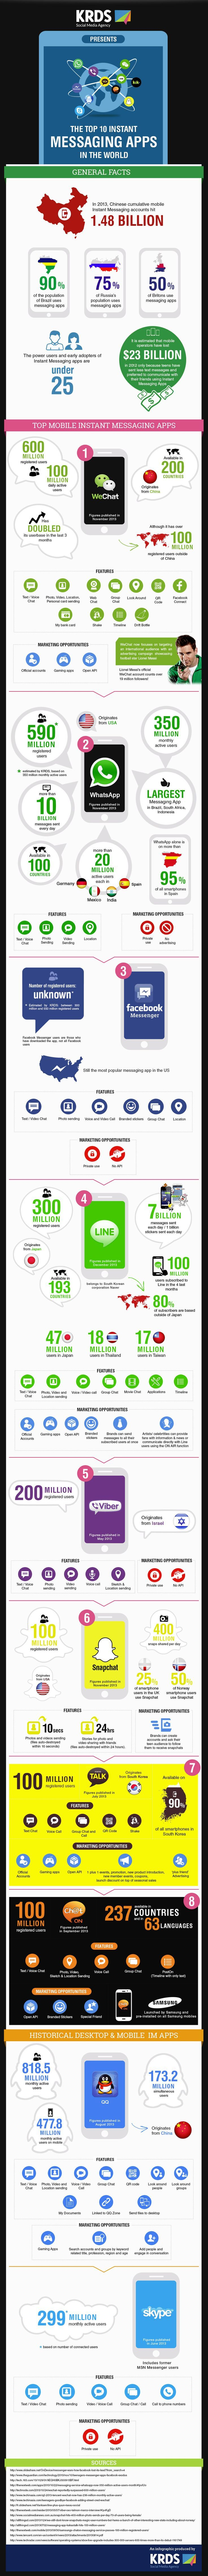 Top 10 Apps for Instant Messaging (Infographic)  -- If you are still using text messages, you are officially old school.